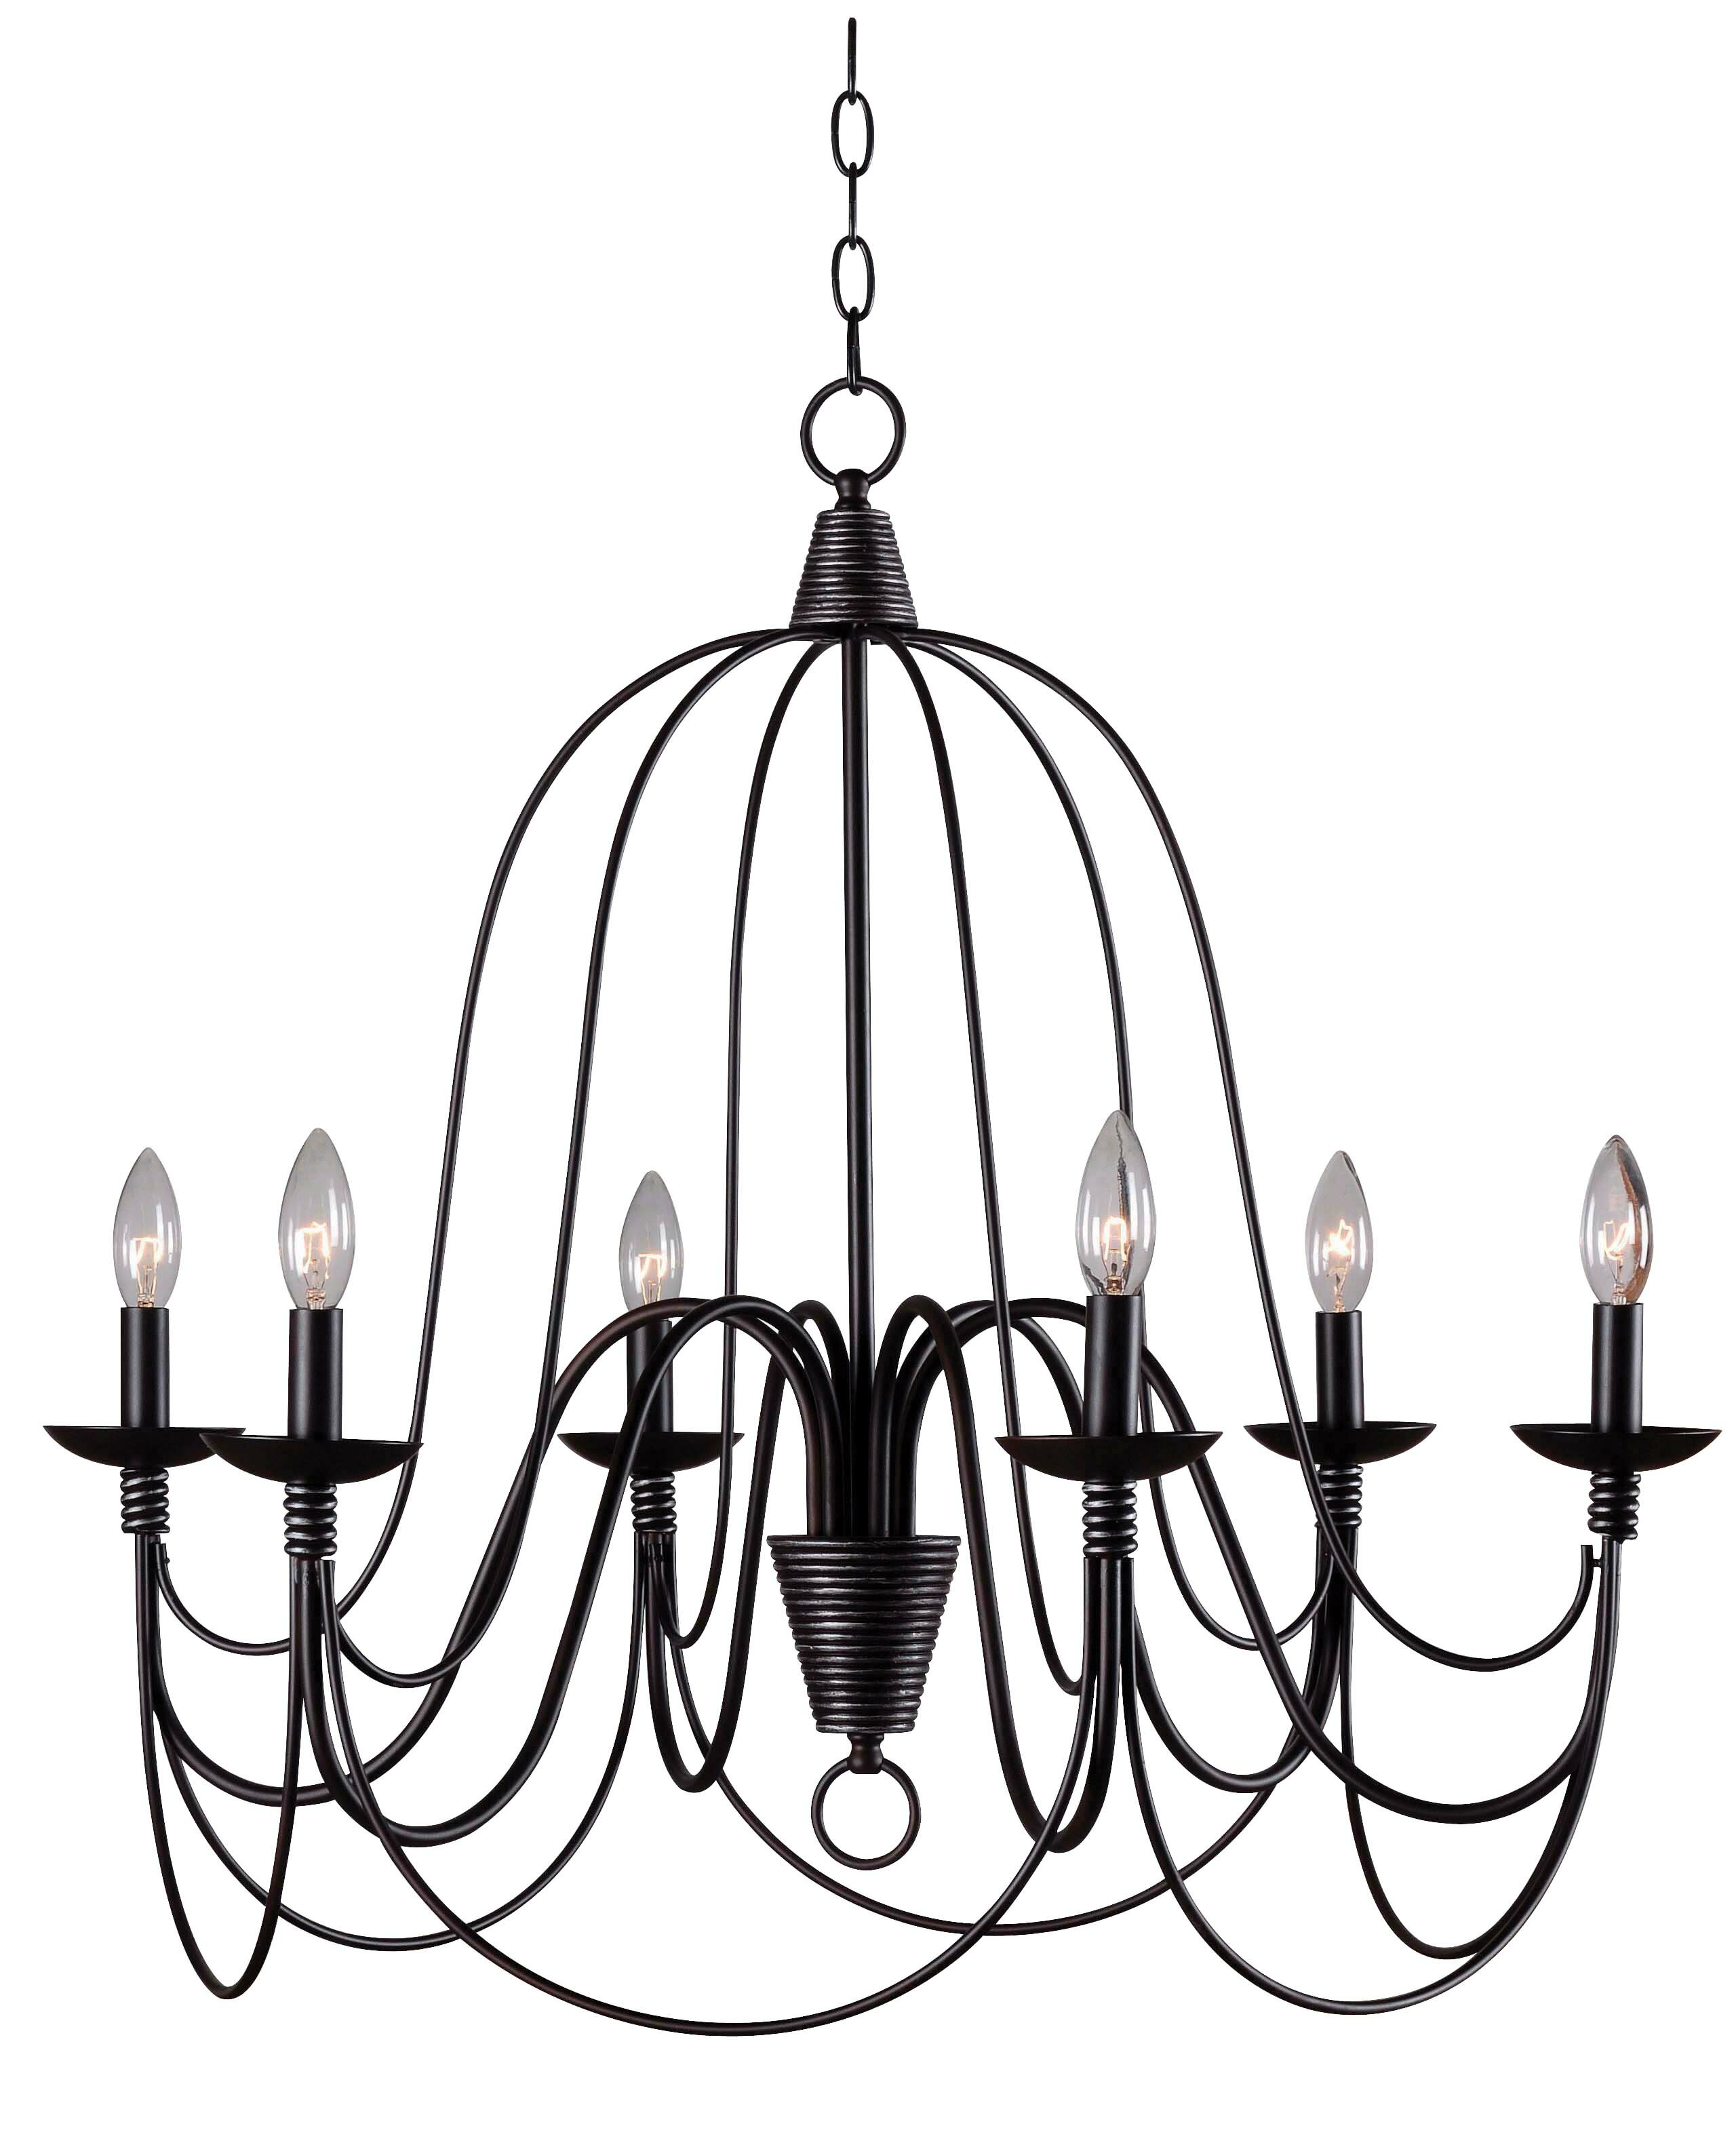 Kollman 6 Light Candle Style Chandelier For Gaines 9 Light Candle Style Chandeliers (Gallery 29 of 30)